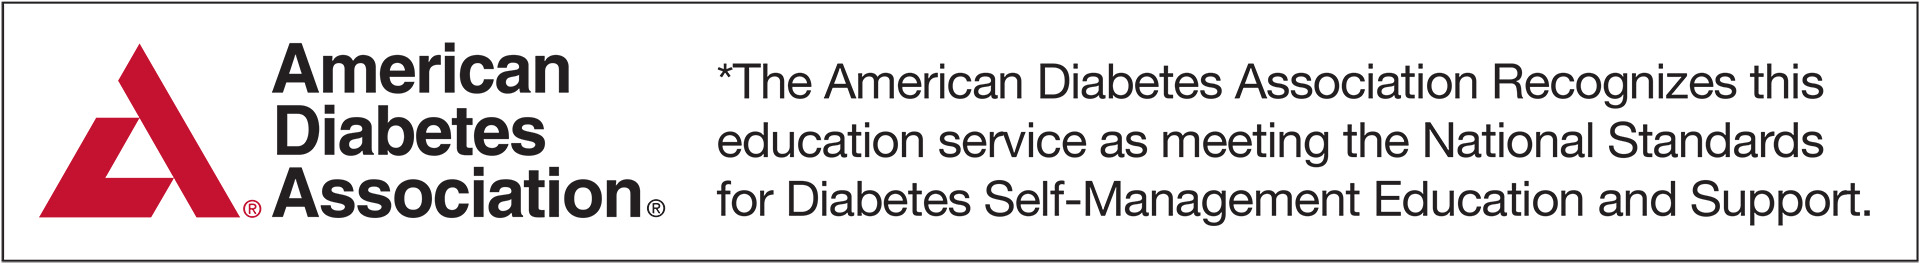 The American Diabetes Association Recognizes this education service as meeting the National Standards for Diabetes Self-Management Education and Support.